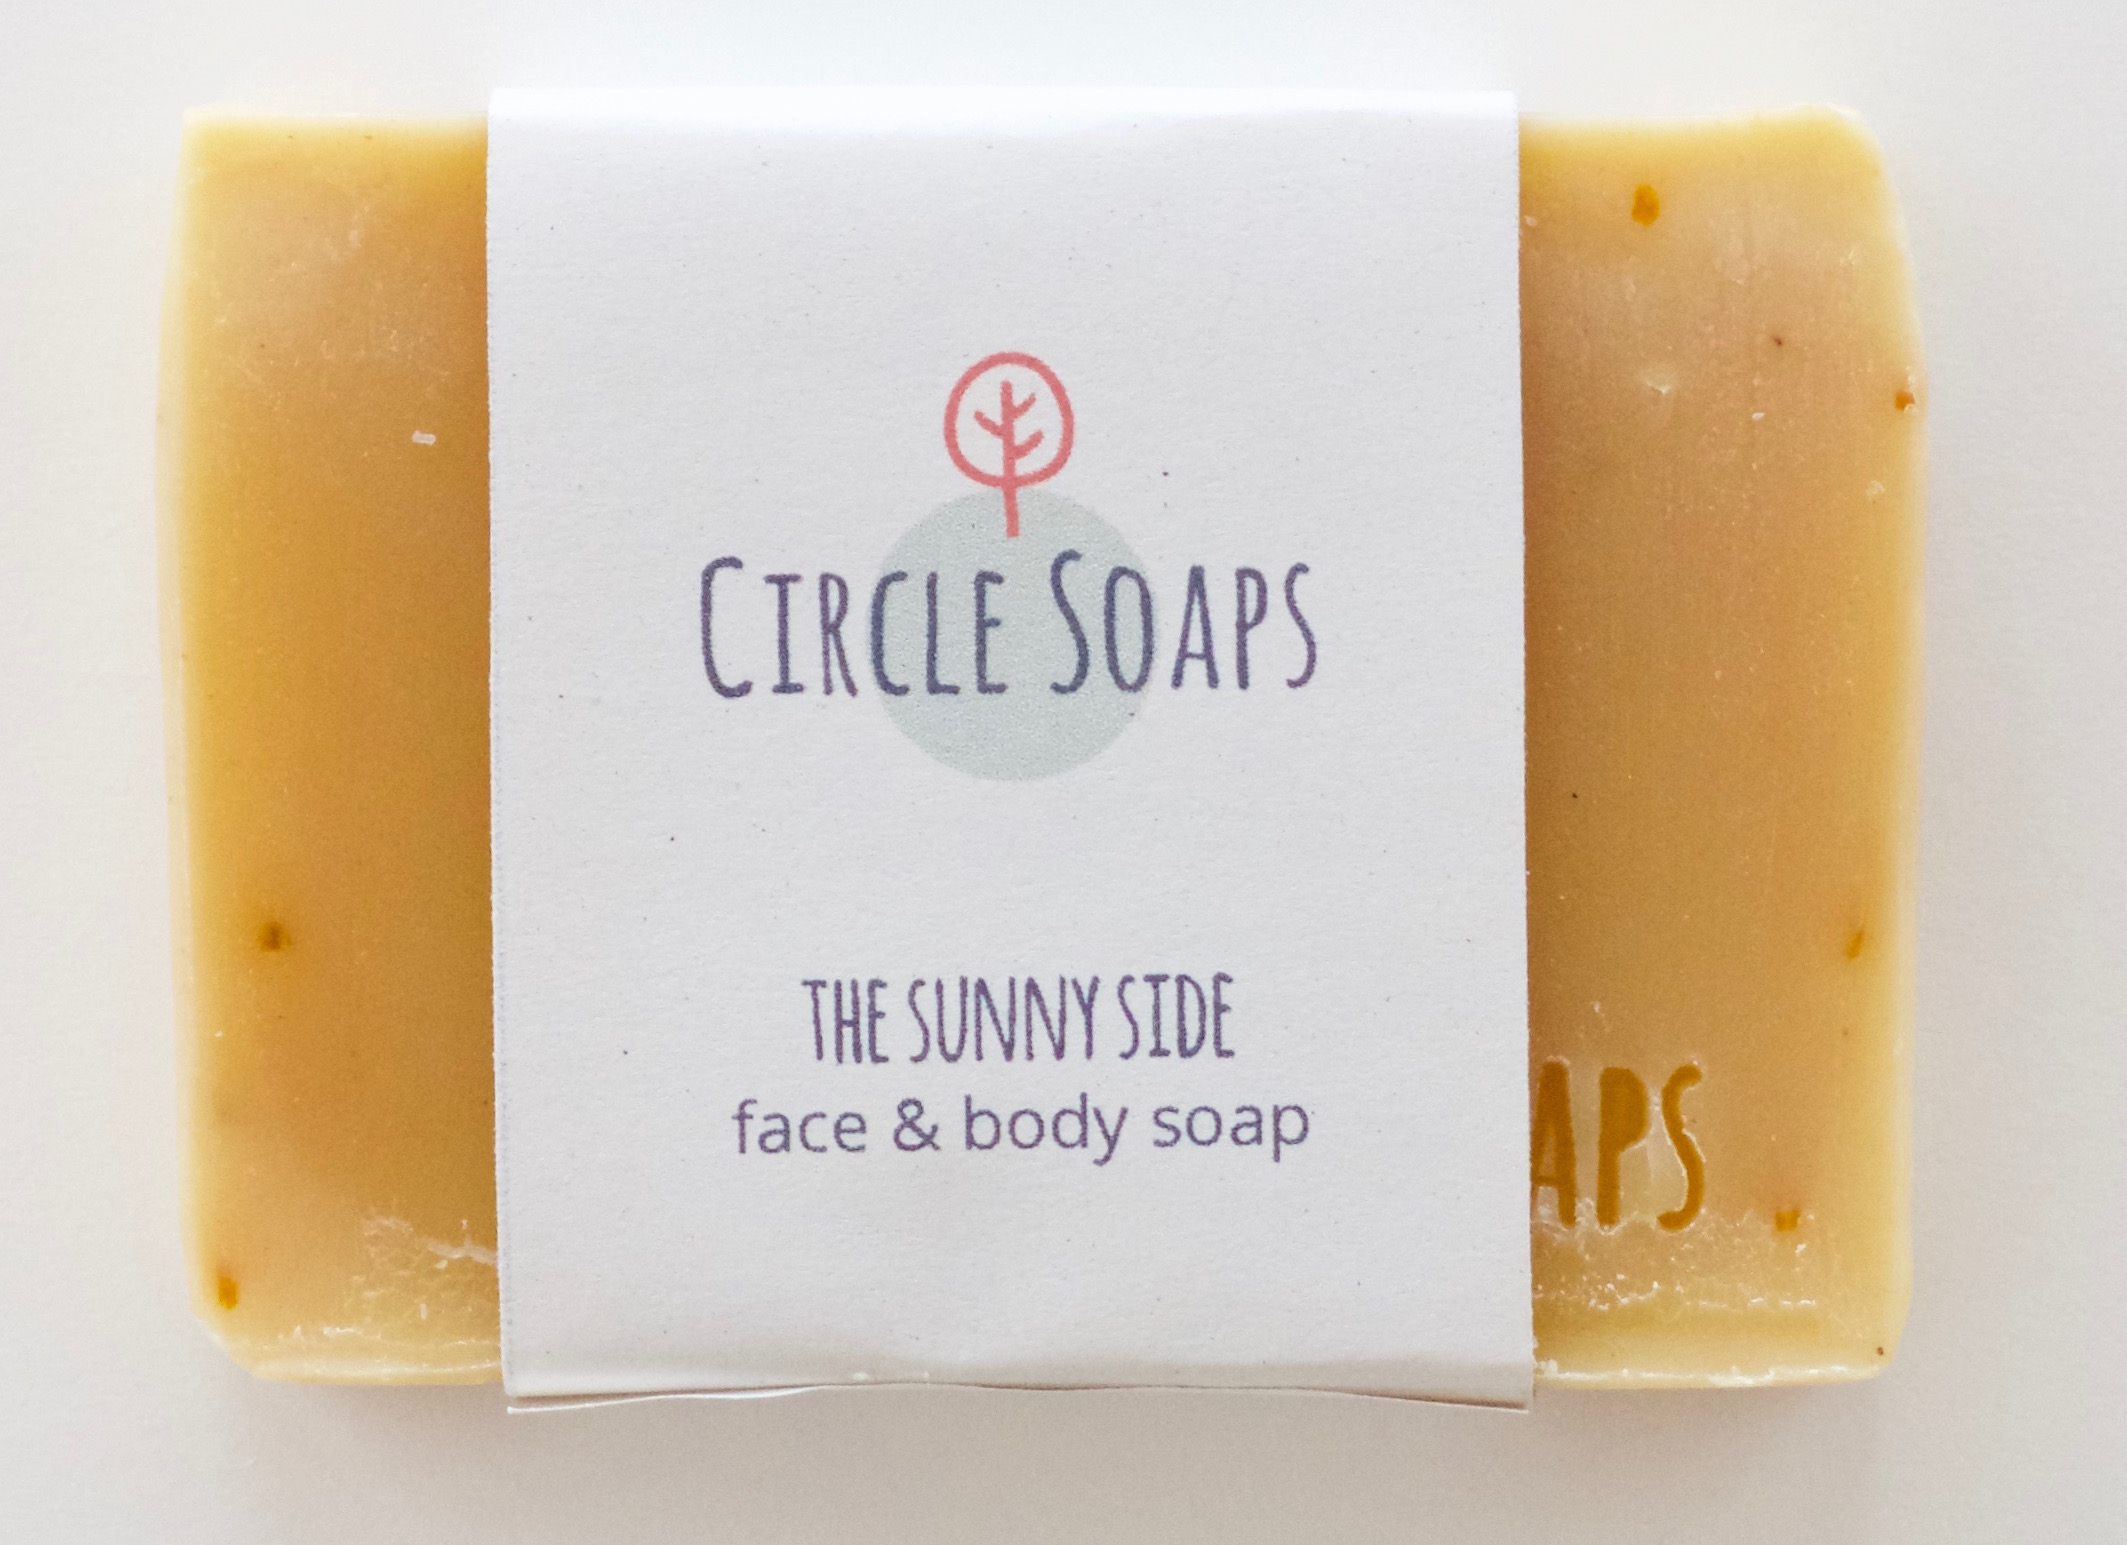 Circle Soaps The Sunny Side